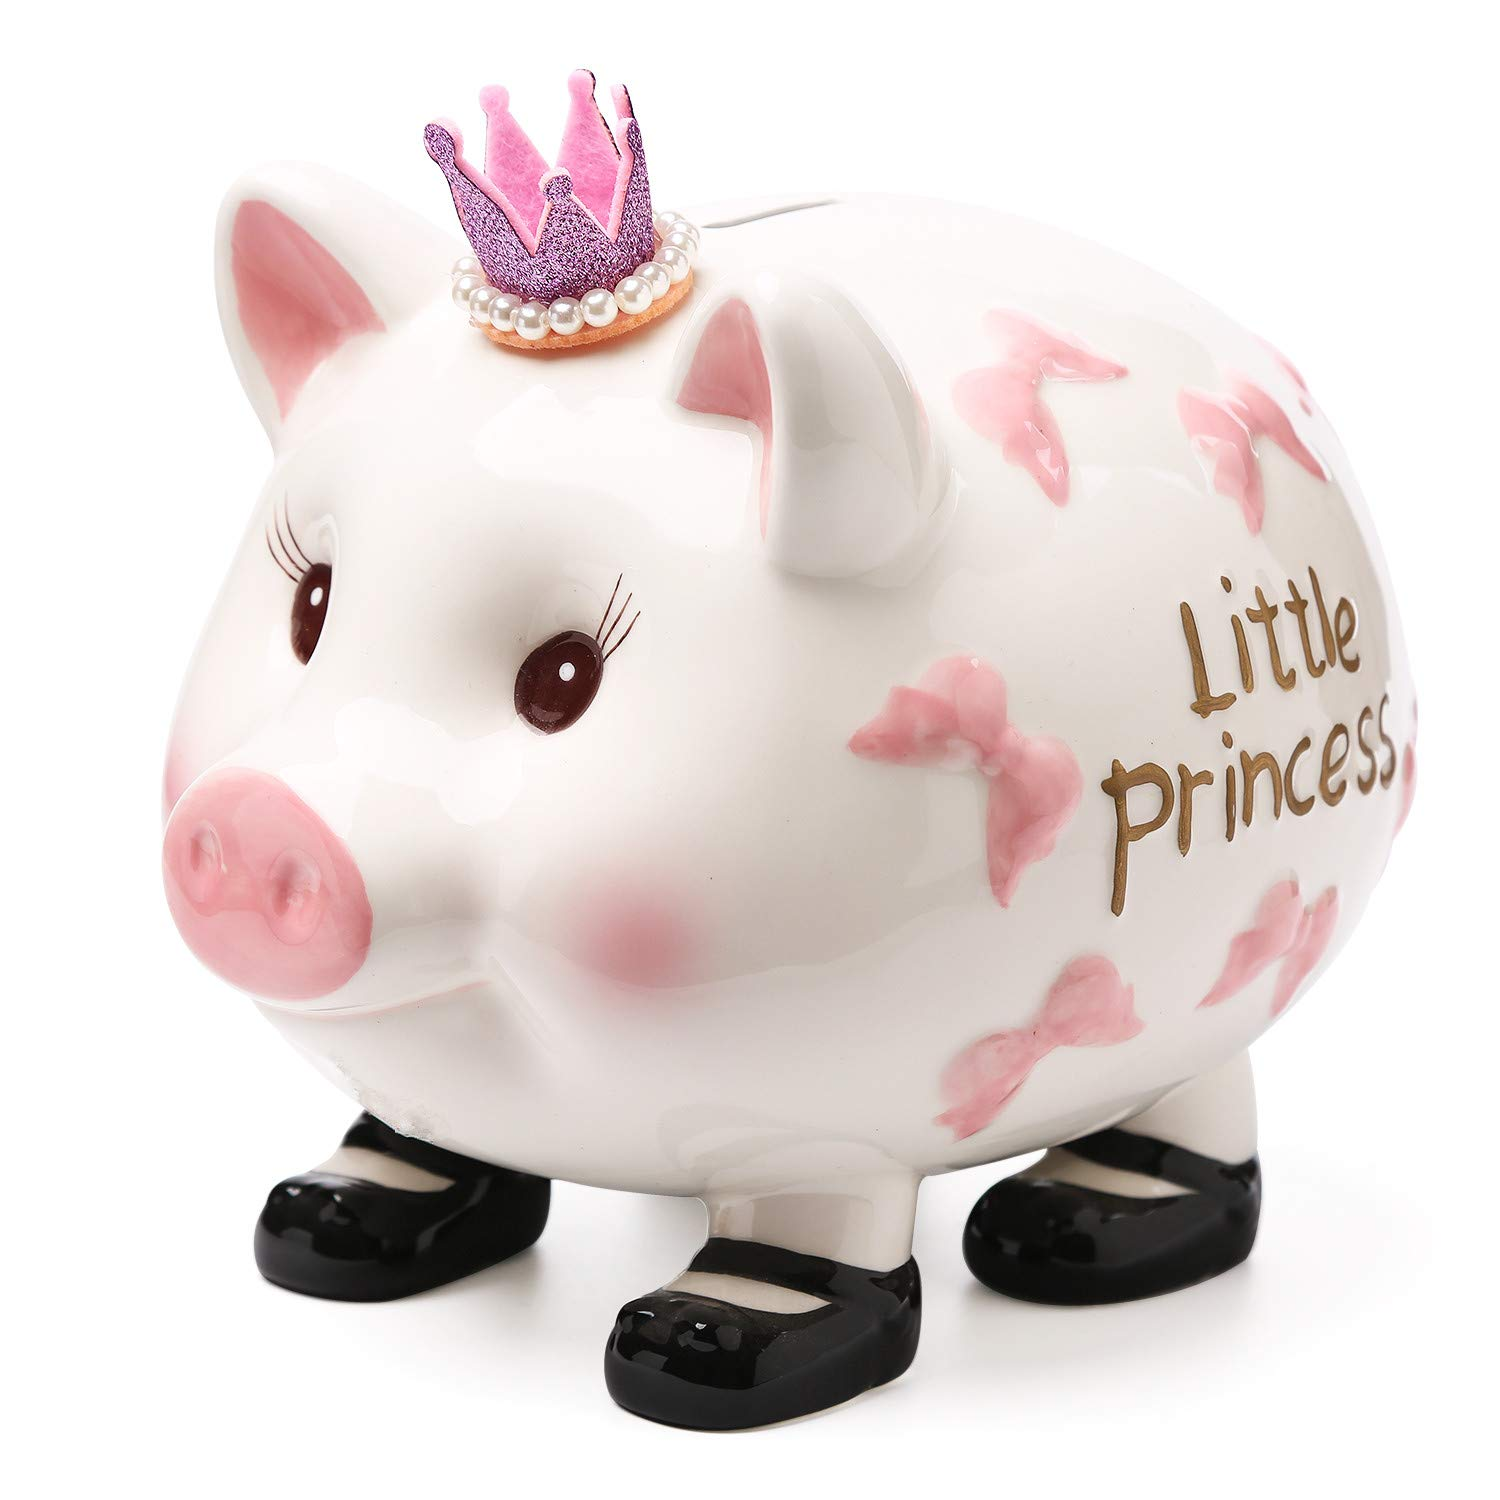 FORLONG FL2031 Crown Princess Large Ceramic Piggy Bank Coin Bank for Girl